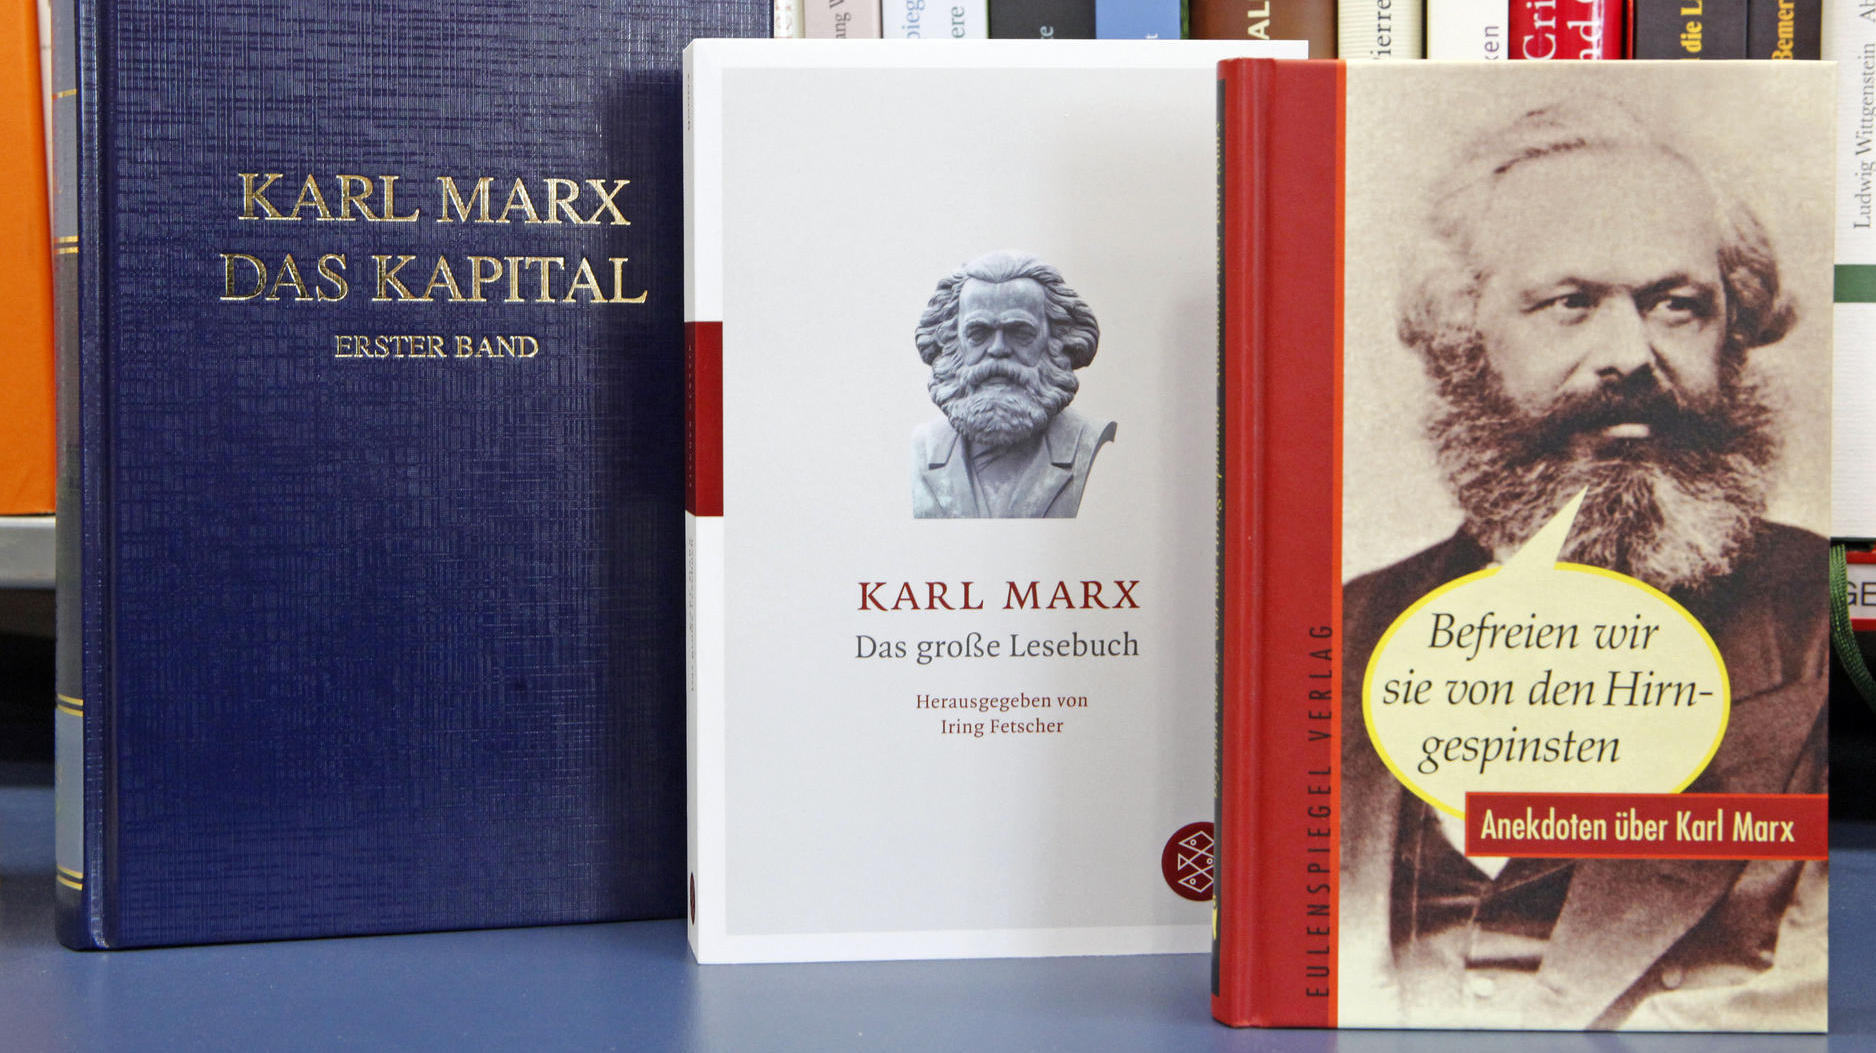 150 jahre das kapital hatte marx doch recht. Black Bedroom Furniture Sets. Home Design Ideas